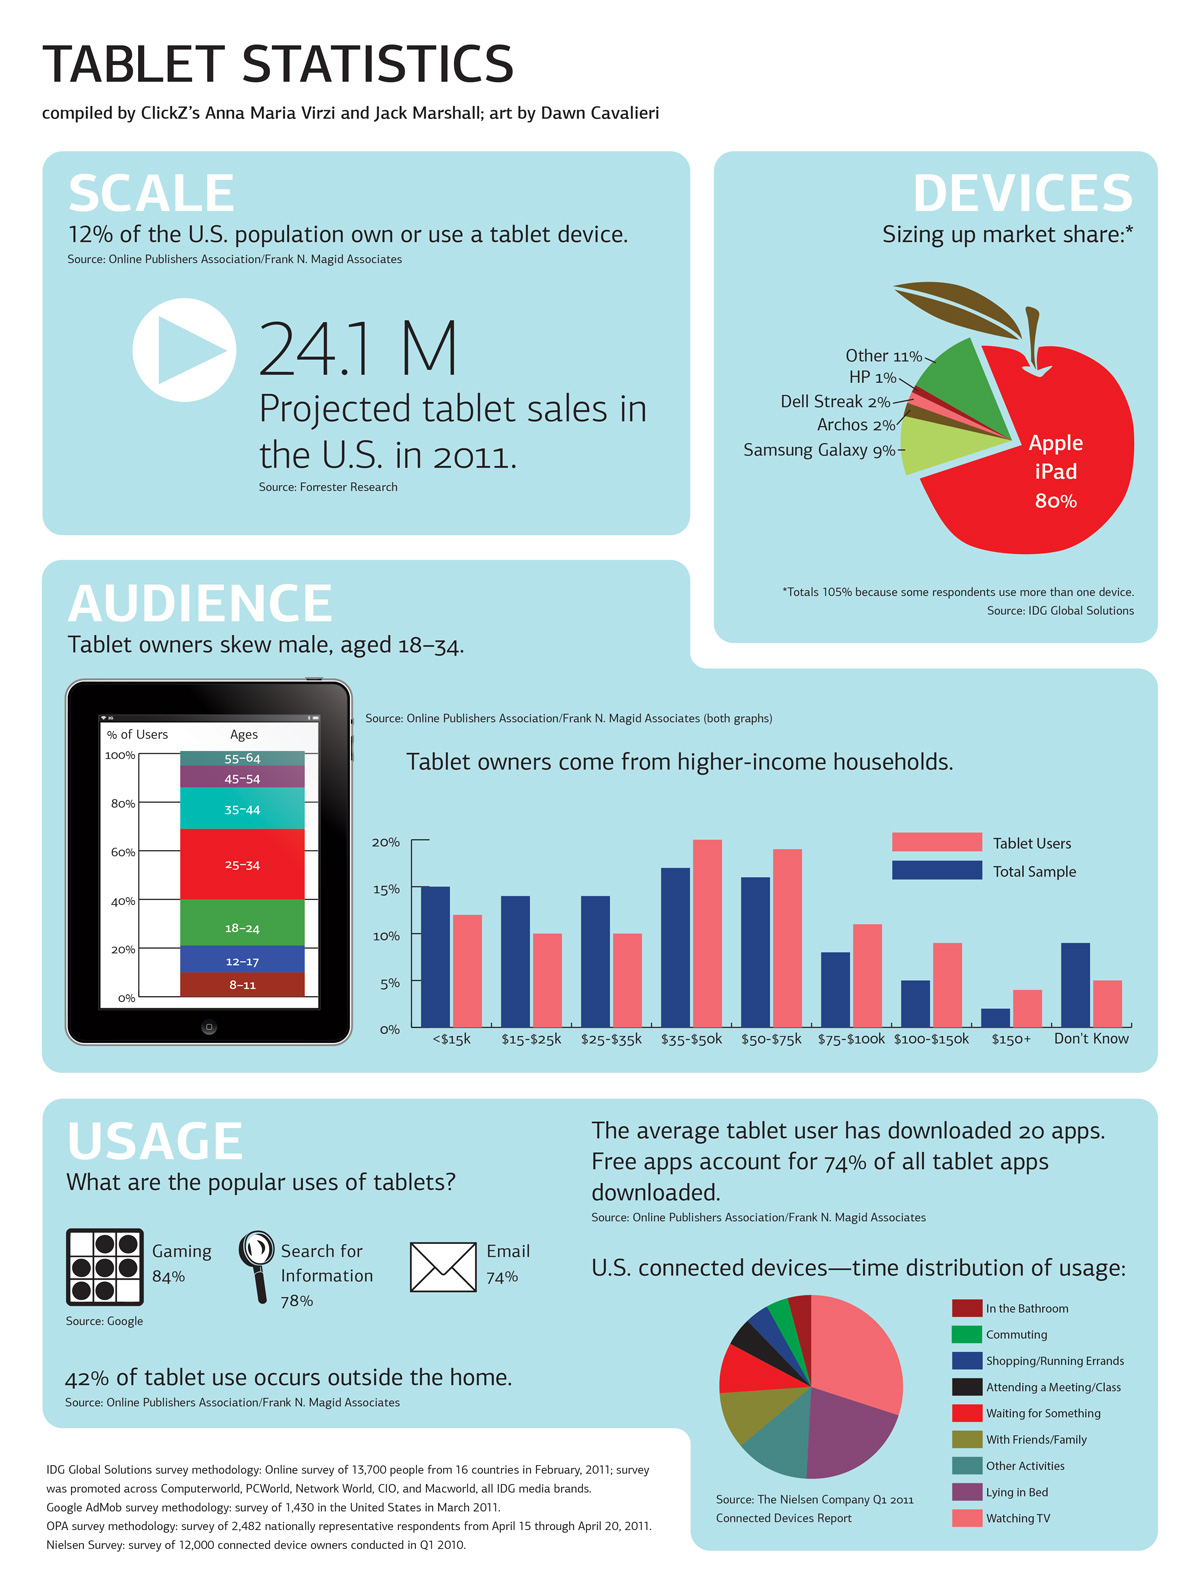 Infographic on usage of tablets